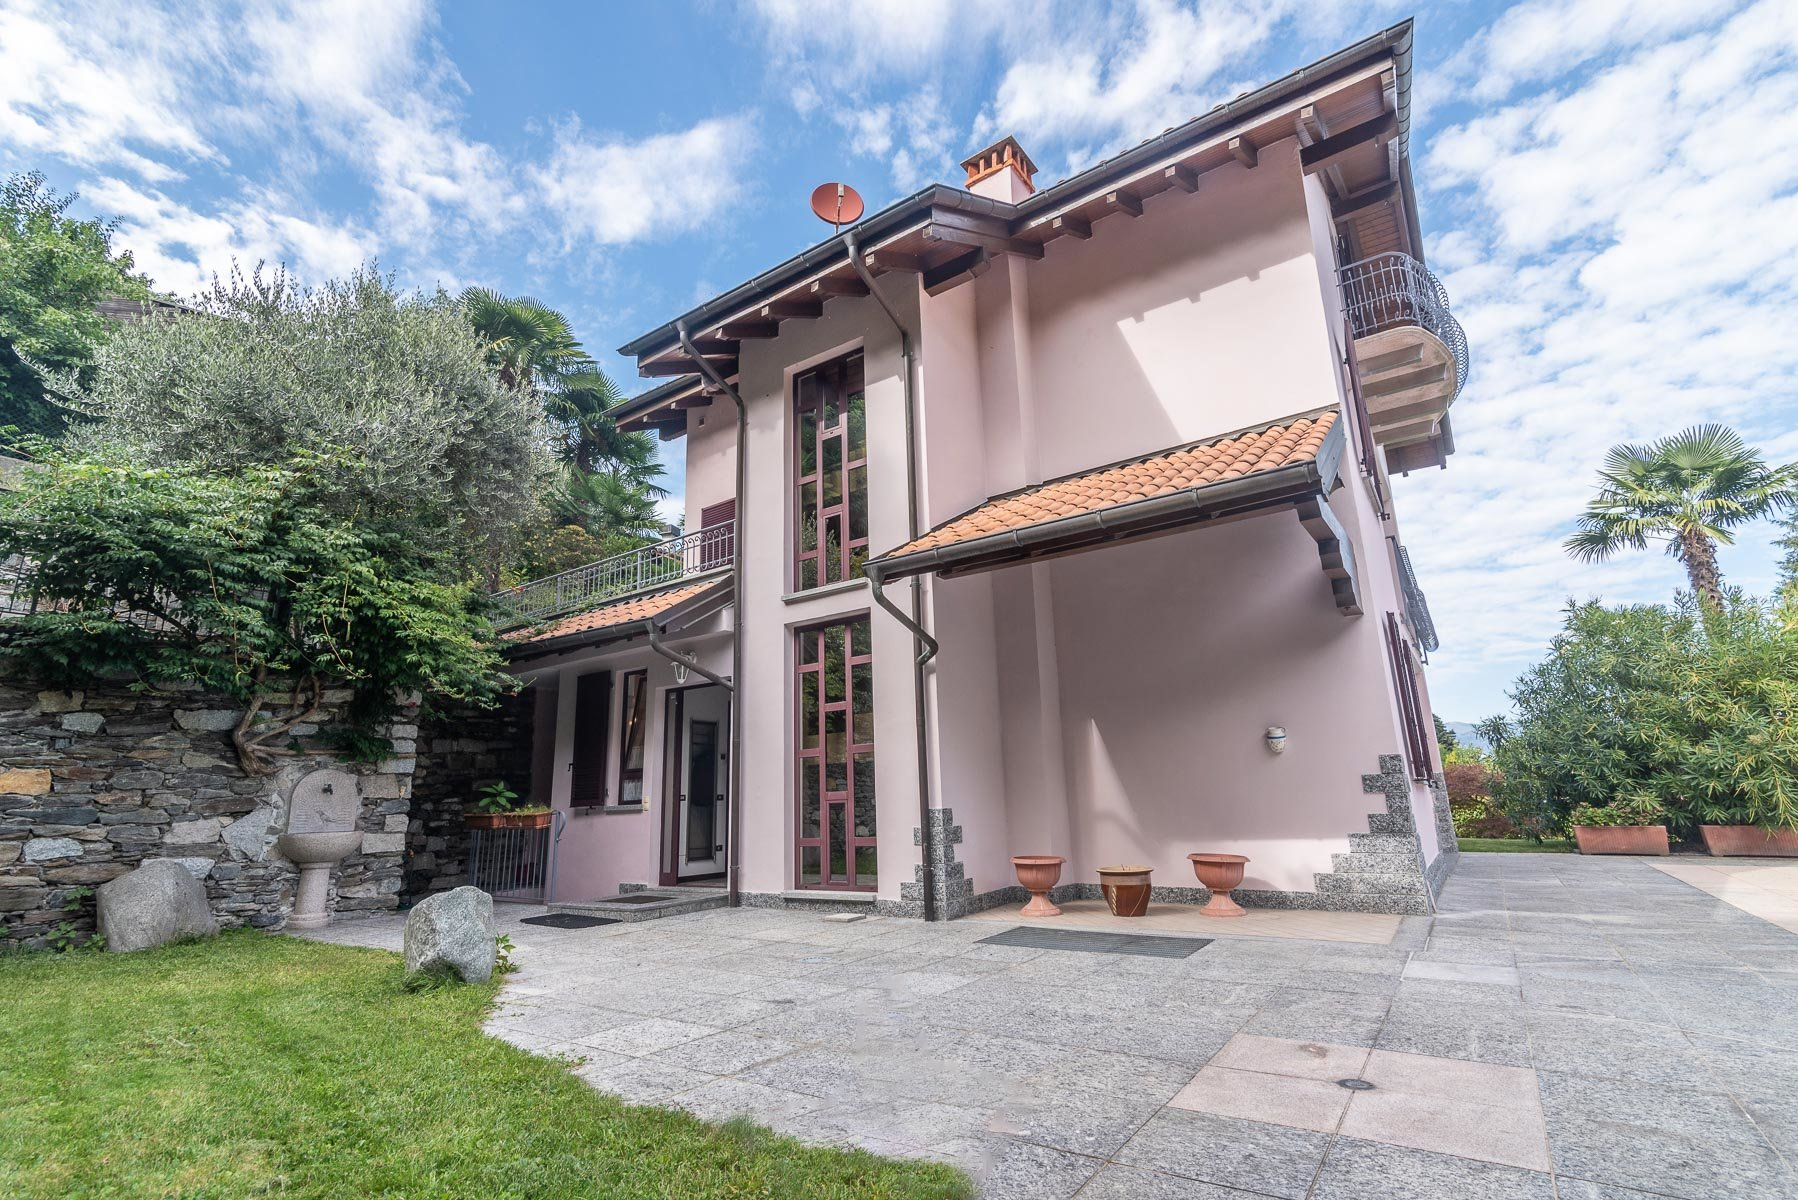 Villa for sale close to centre of Stresa